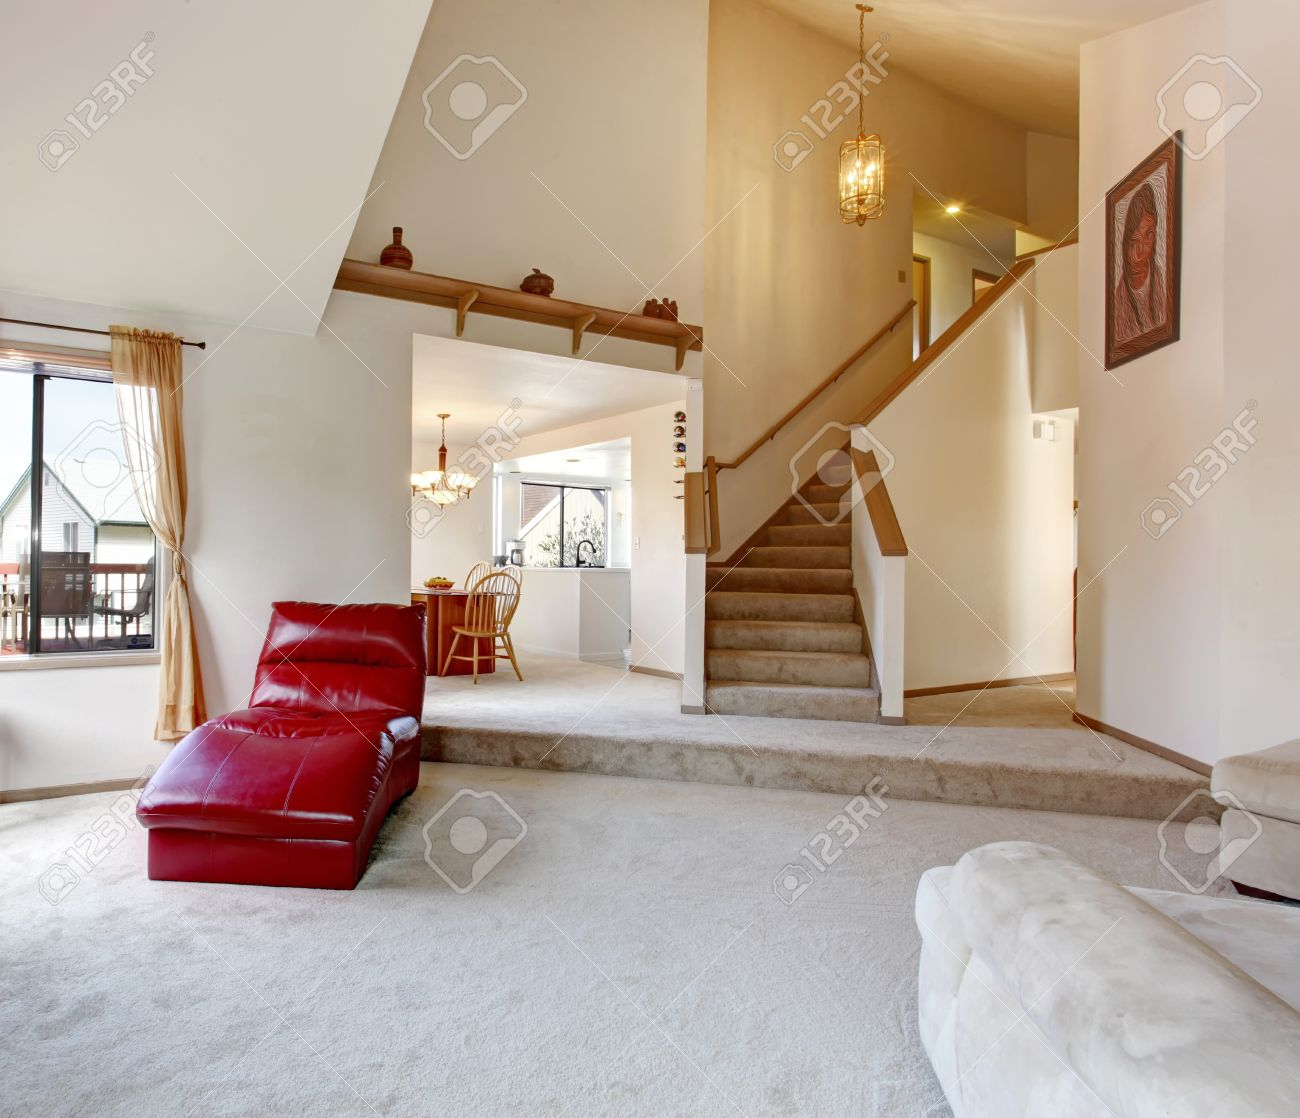 High Vaulted Ceiling Living Room With Hallway And Stairs Open To Dining Kitchen